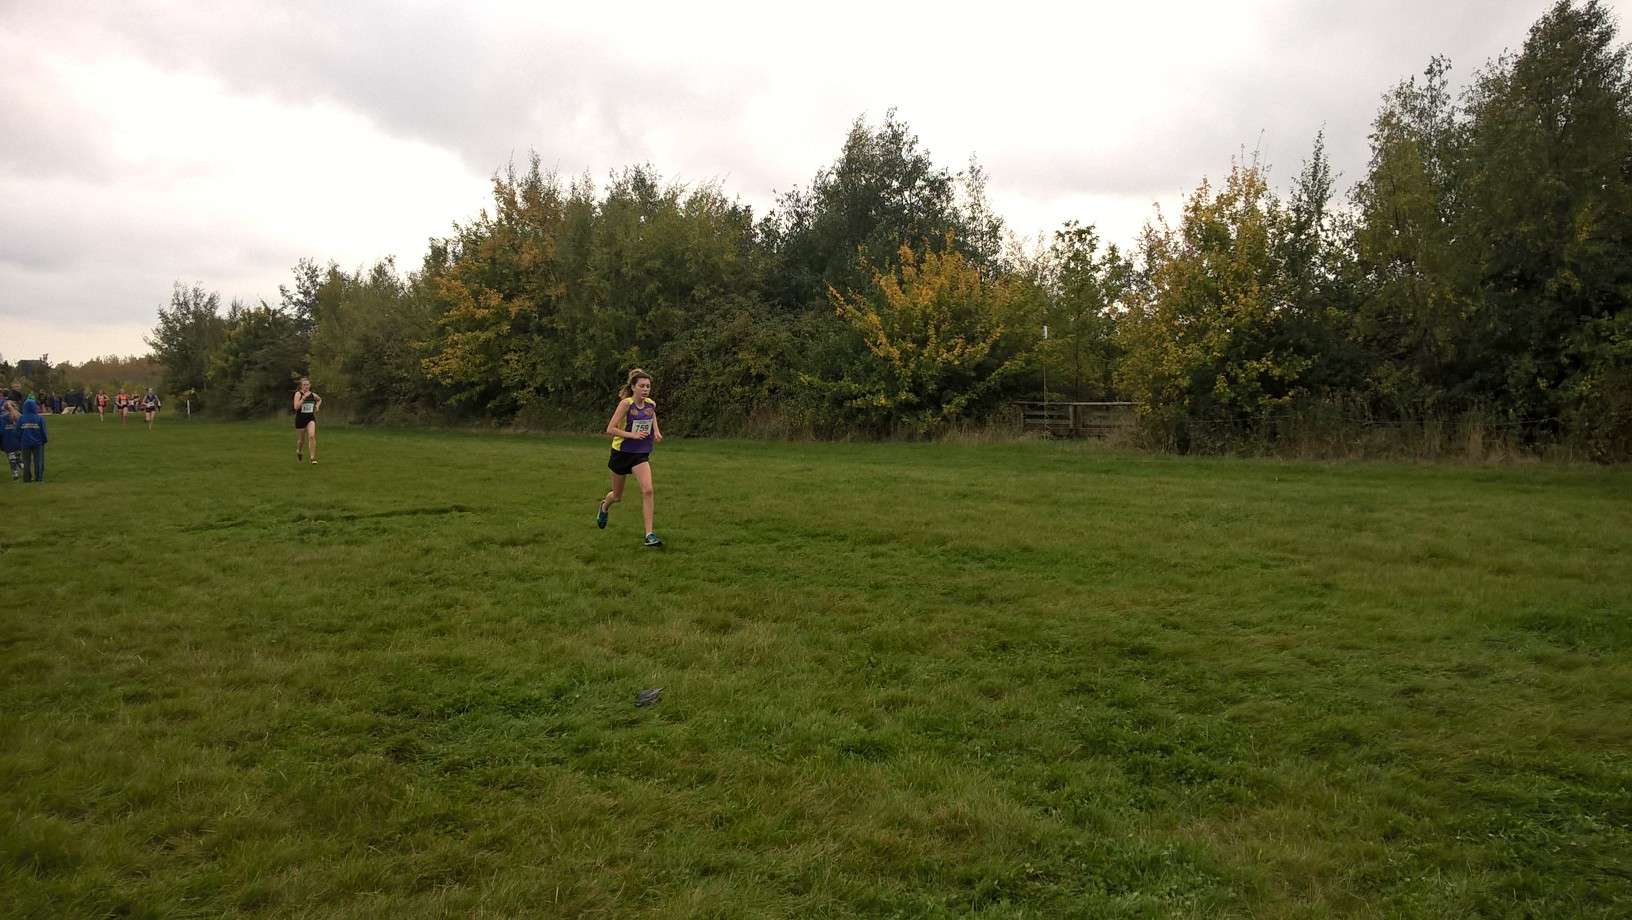 Megan finishing strongly for the U17 women